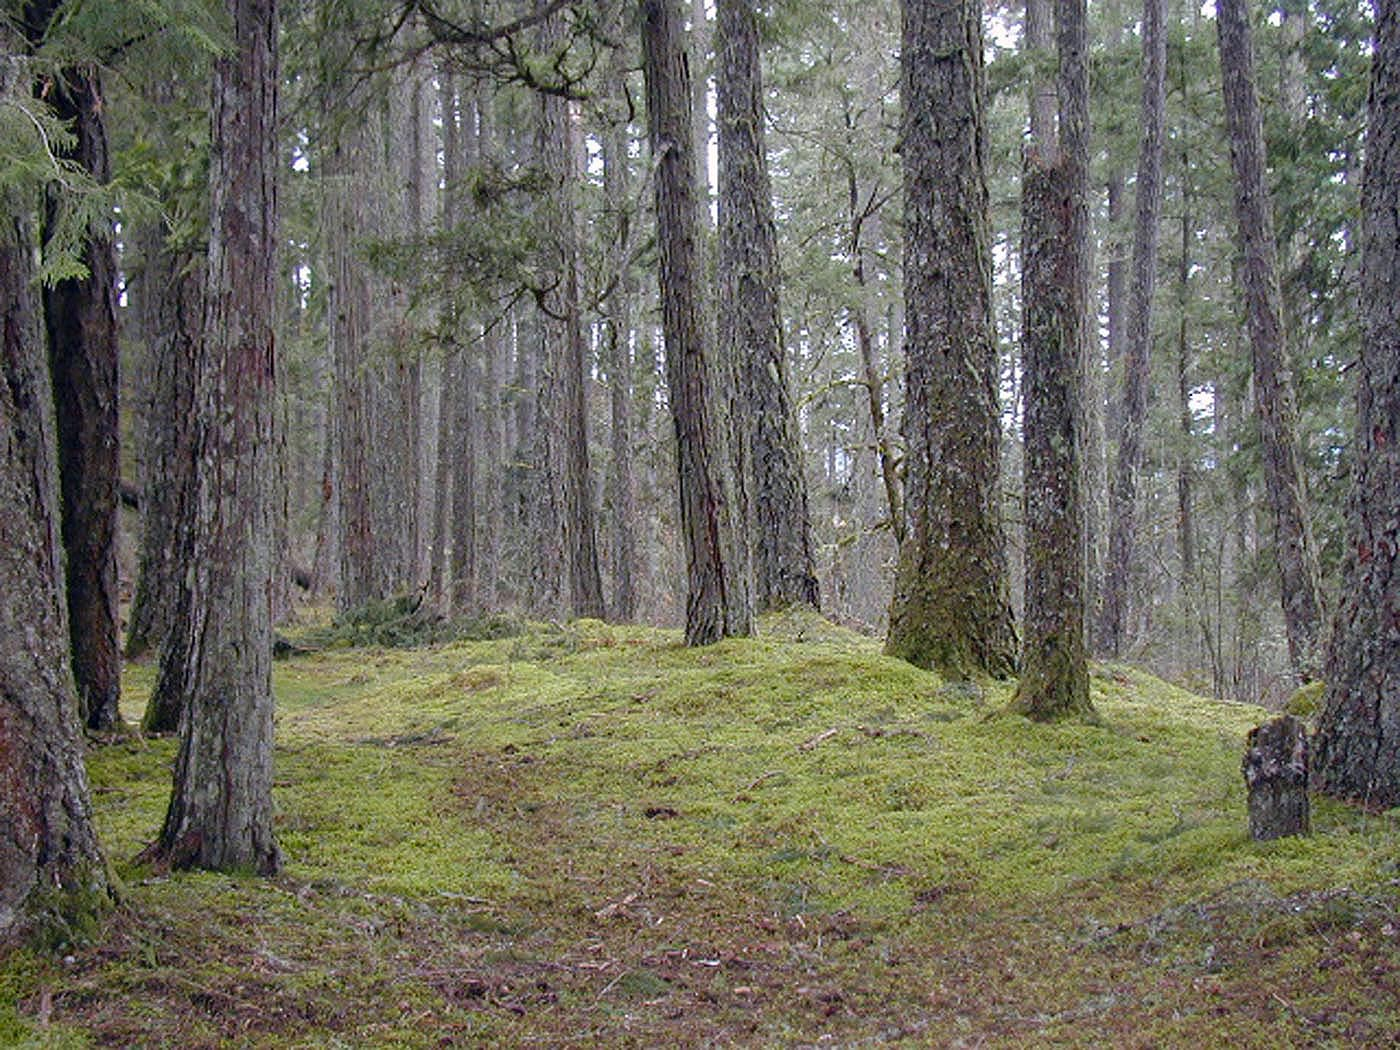 Pacific Northwest Interagency Natural Areas Network